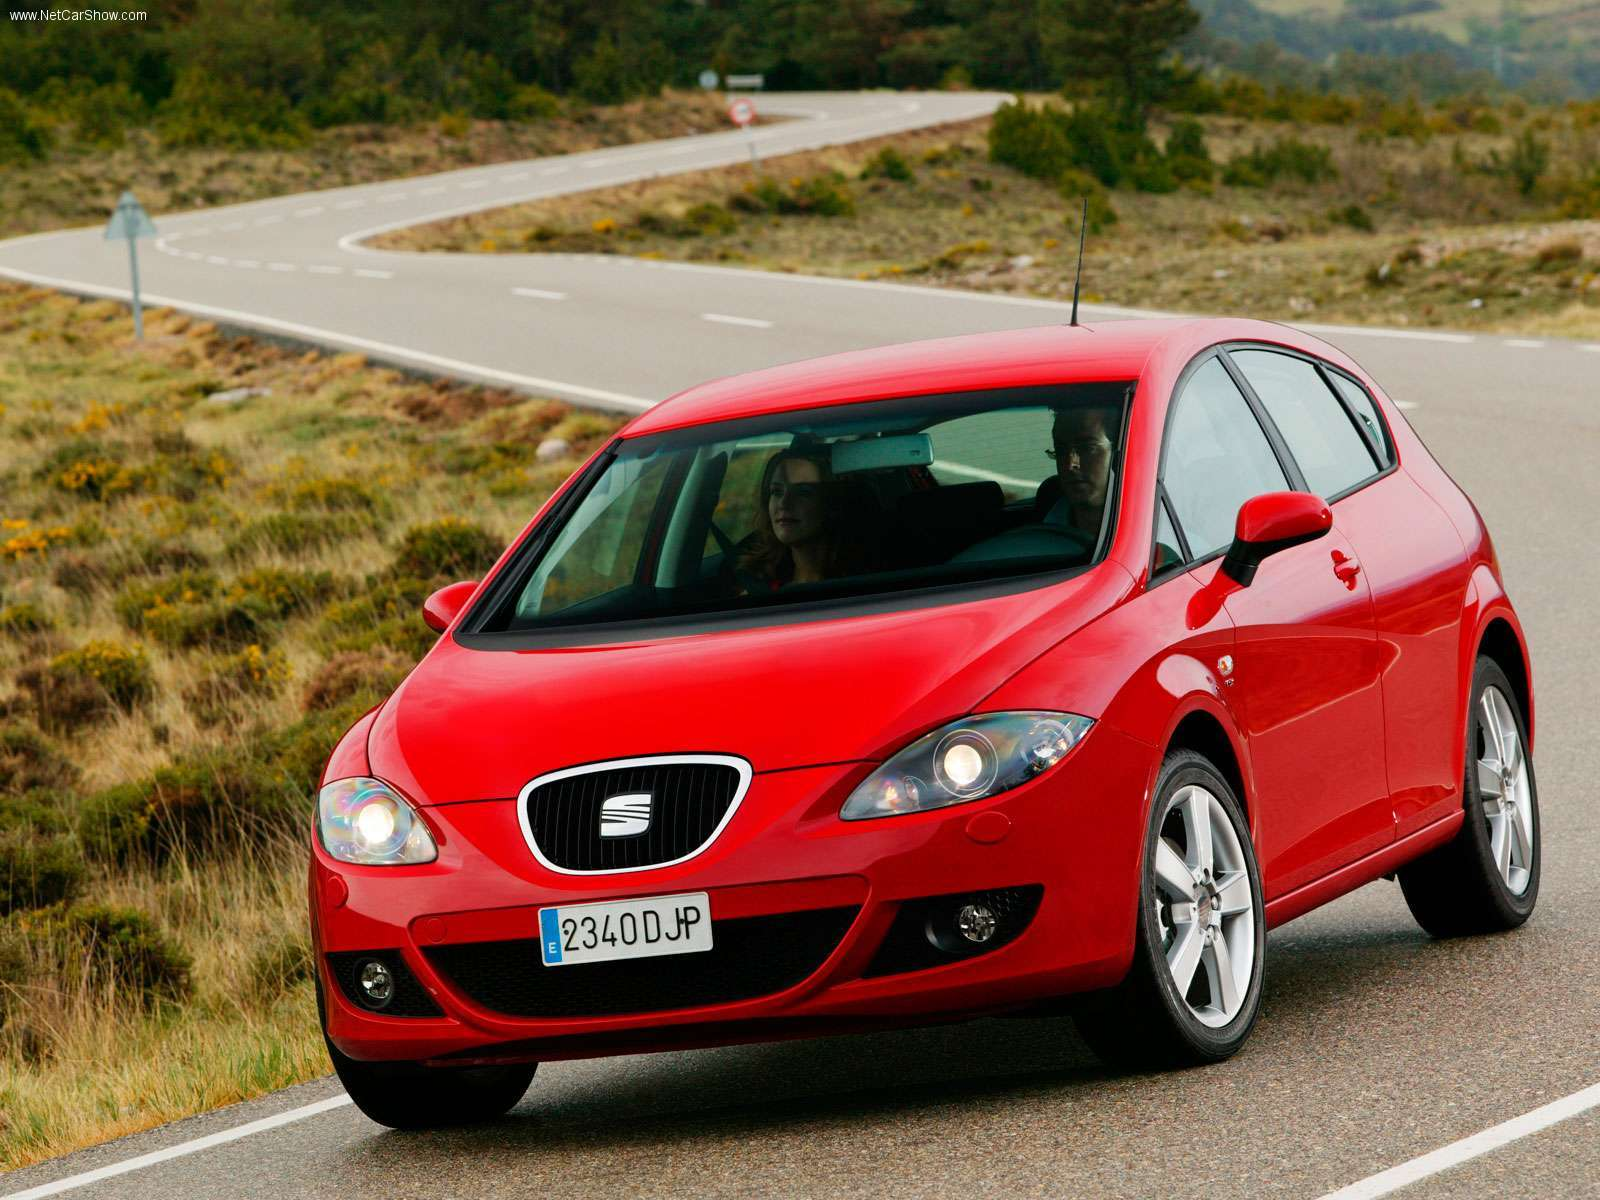 Seat Leon 5 Door Hatchback 2006